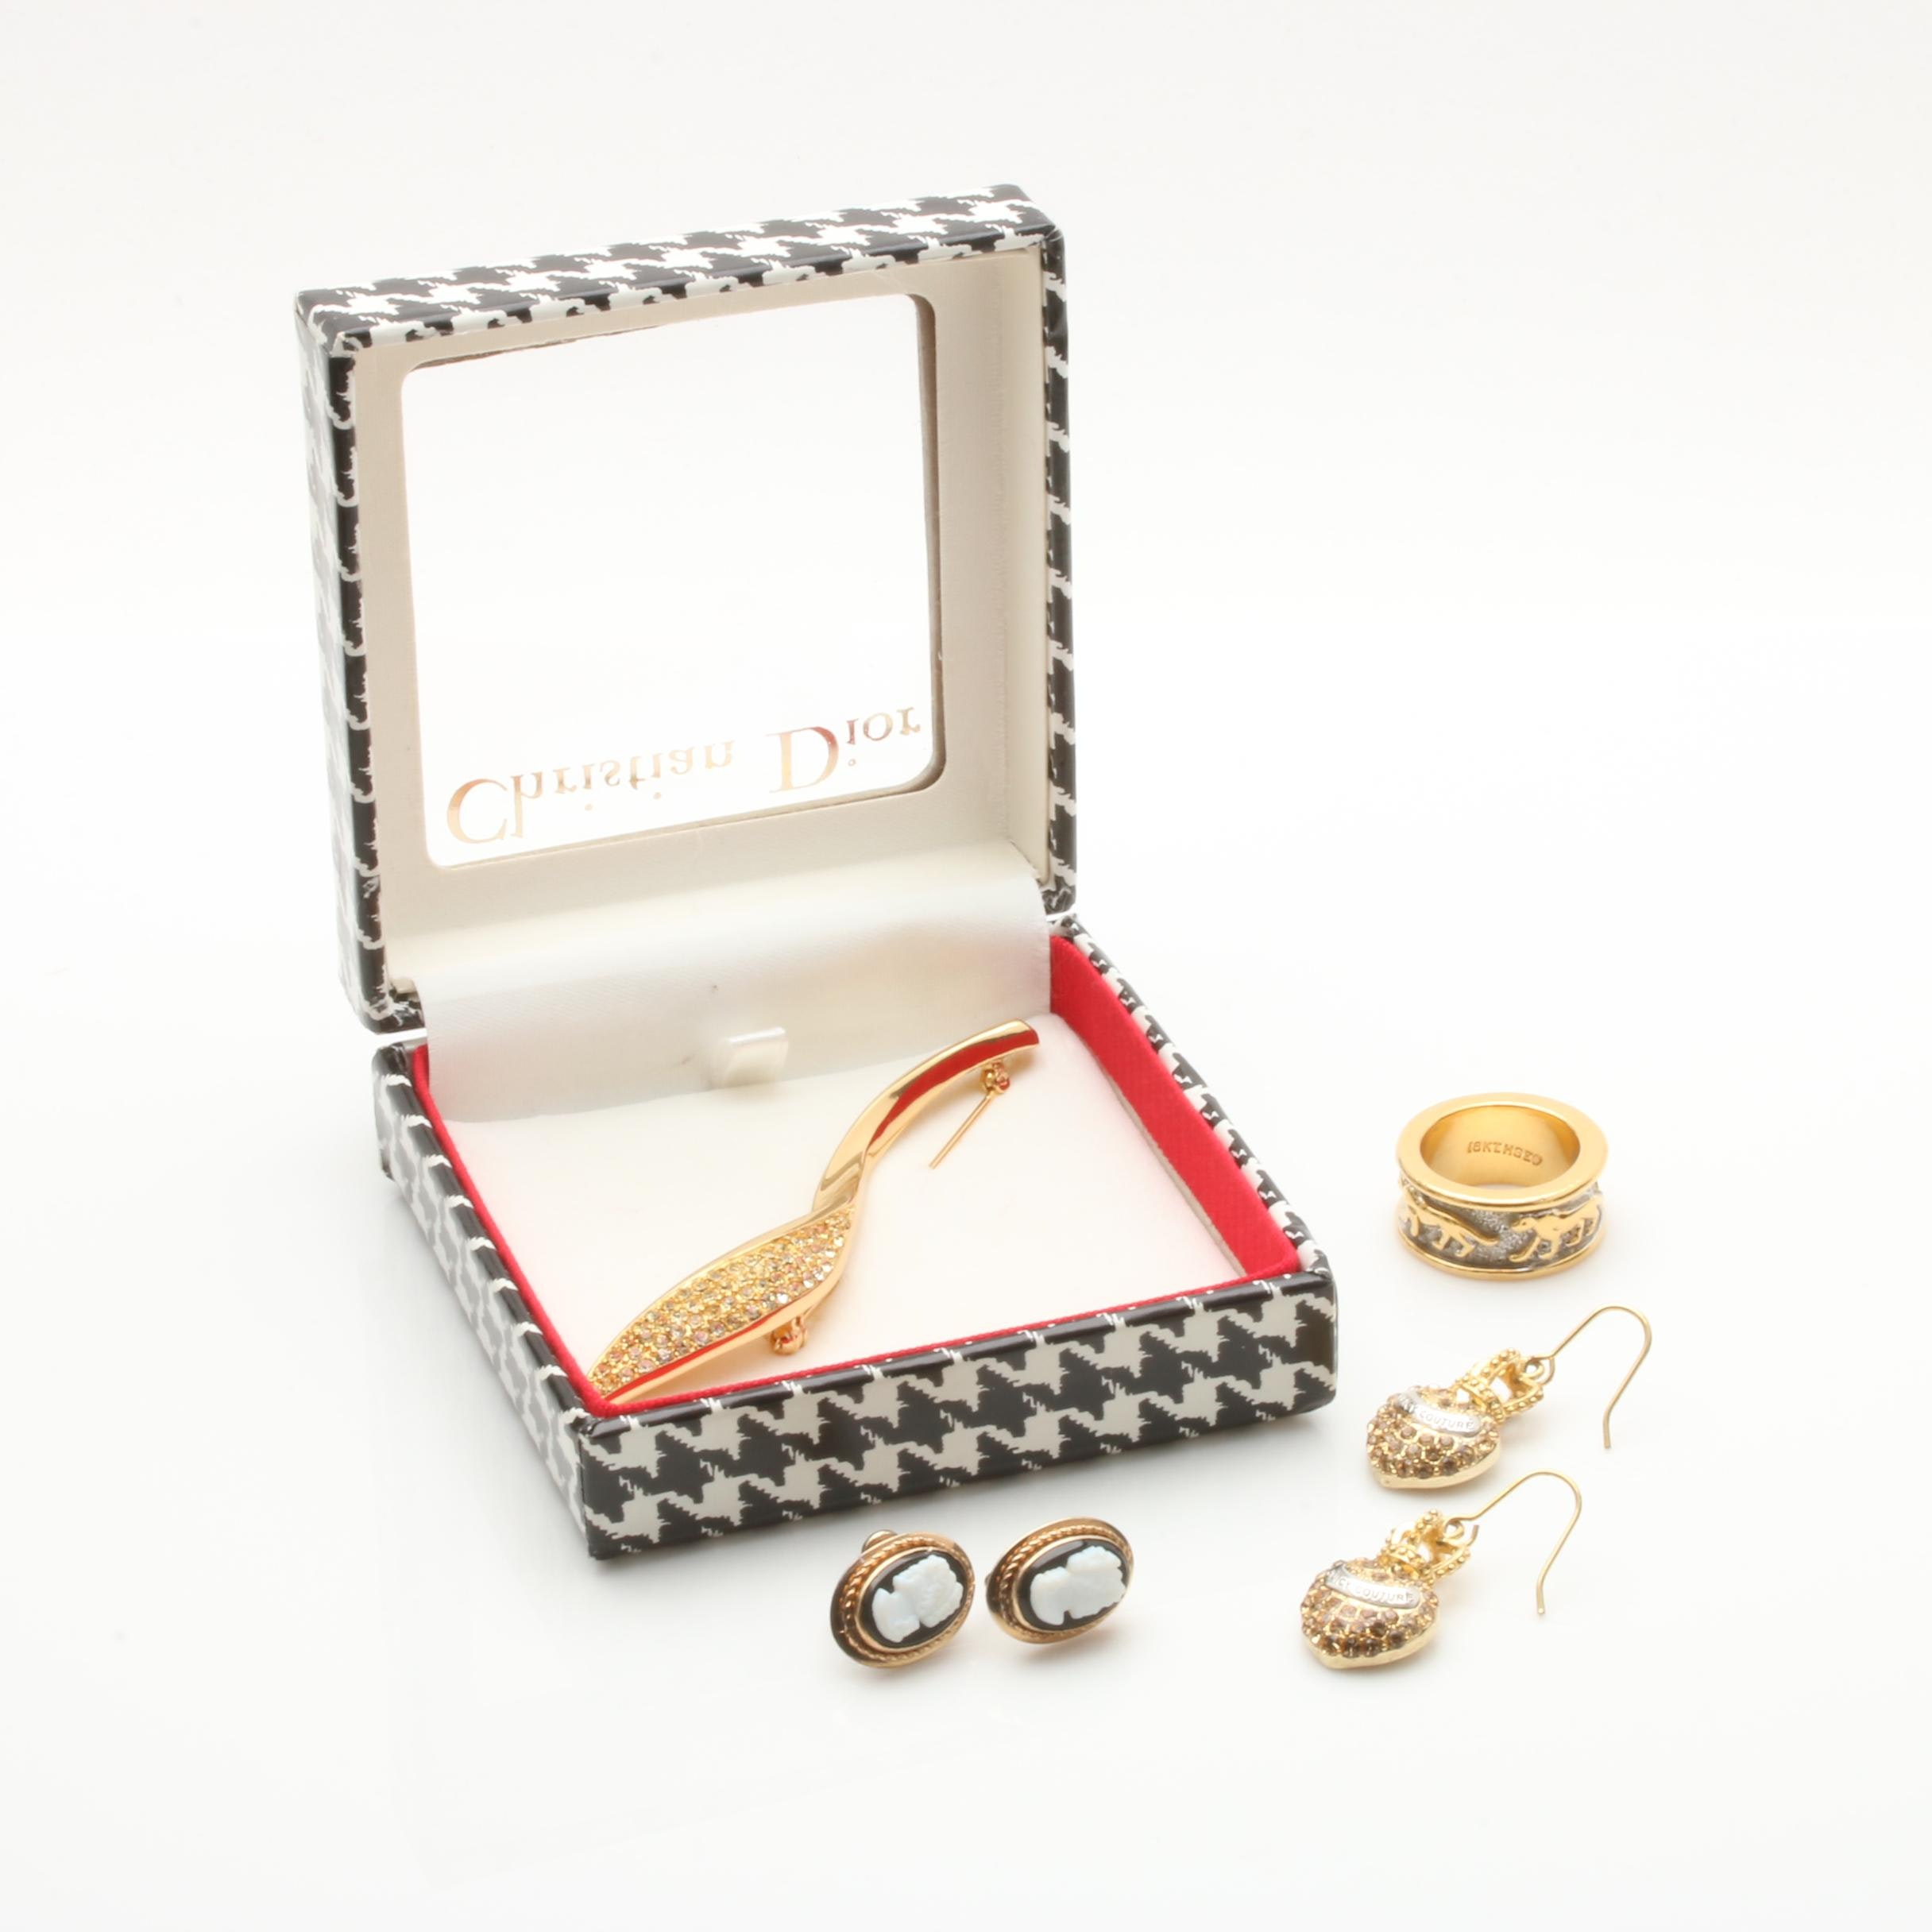 Gold Tone and Gold Filled Jewelry Including Christian Dior and Juicy Couture